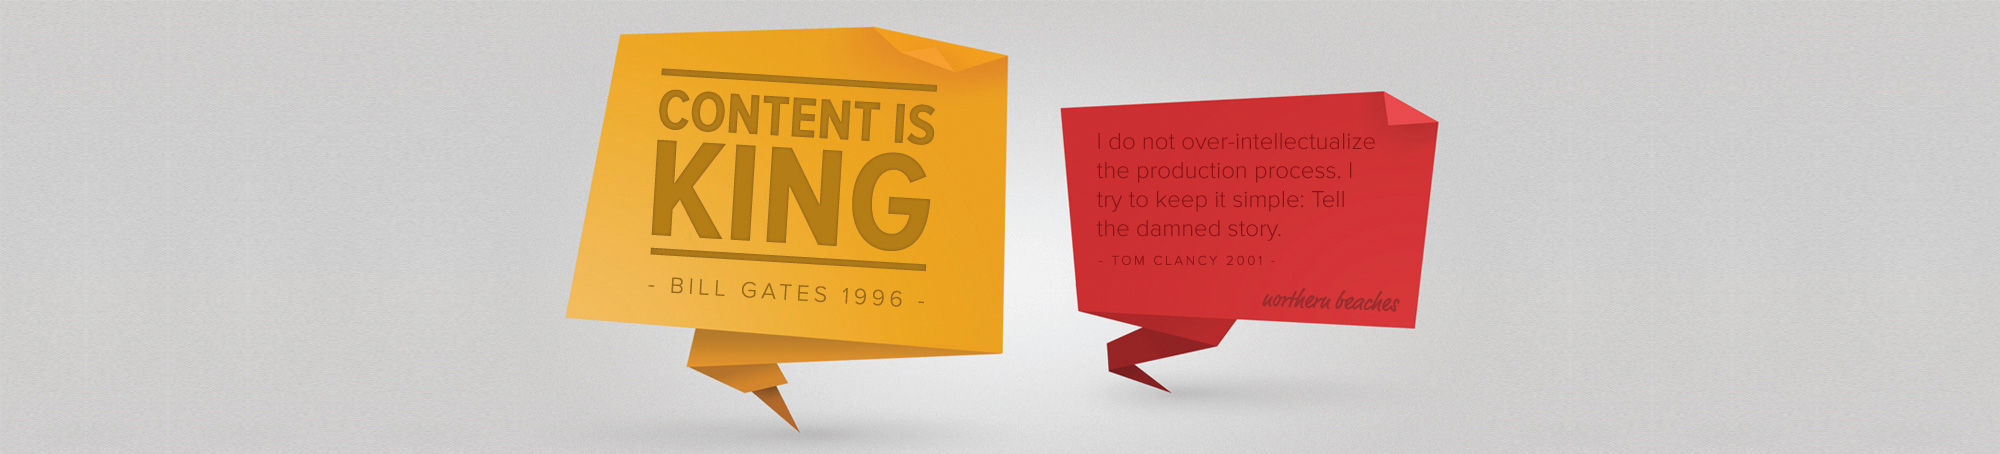 CONTENT-IS-KING-TOM-CLANCY-BILL-GATES